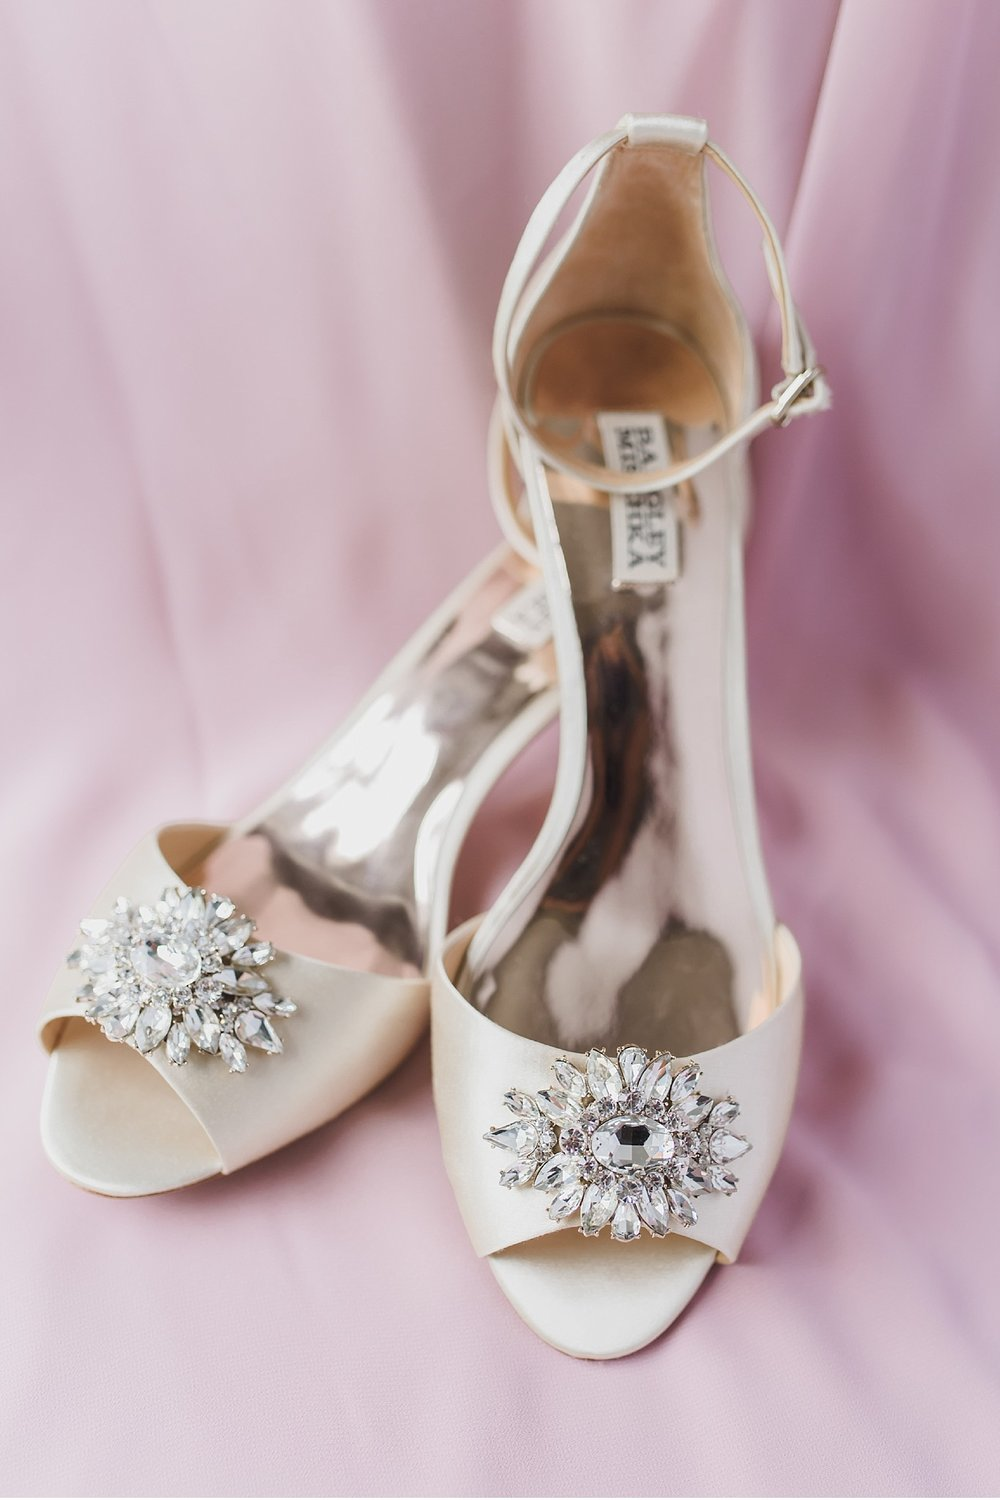 Badgley Mishchka  shoes Hershey Gardens Hershey Country Club Summer beautiful wedding photography_1540.jpg